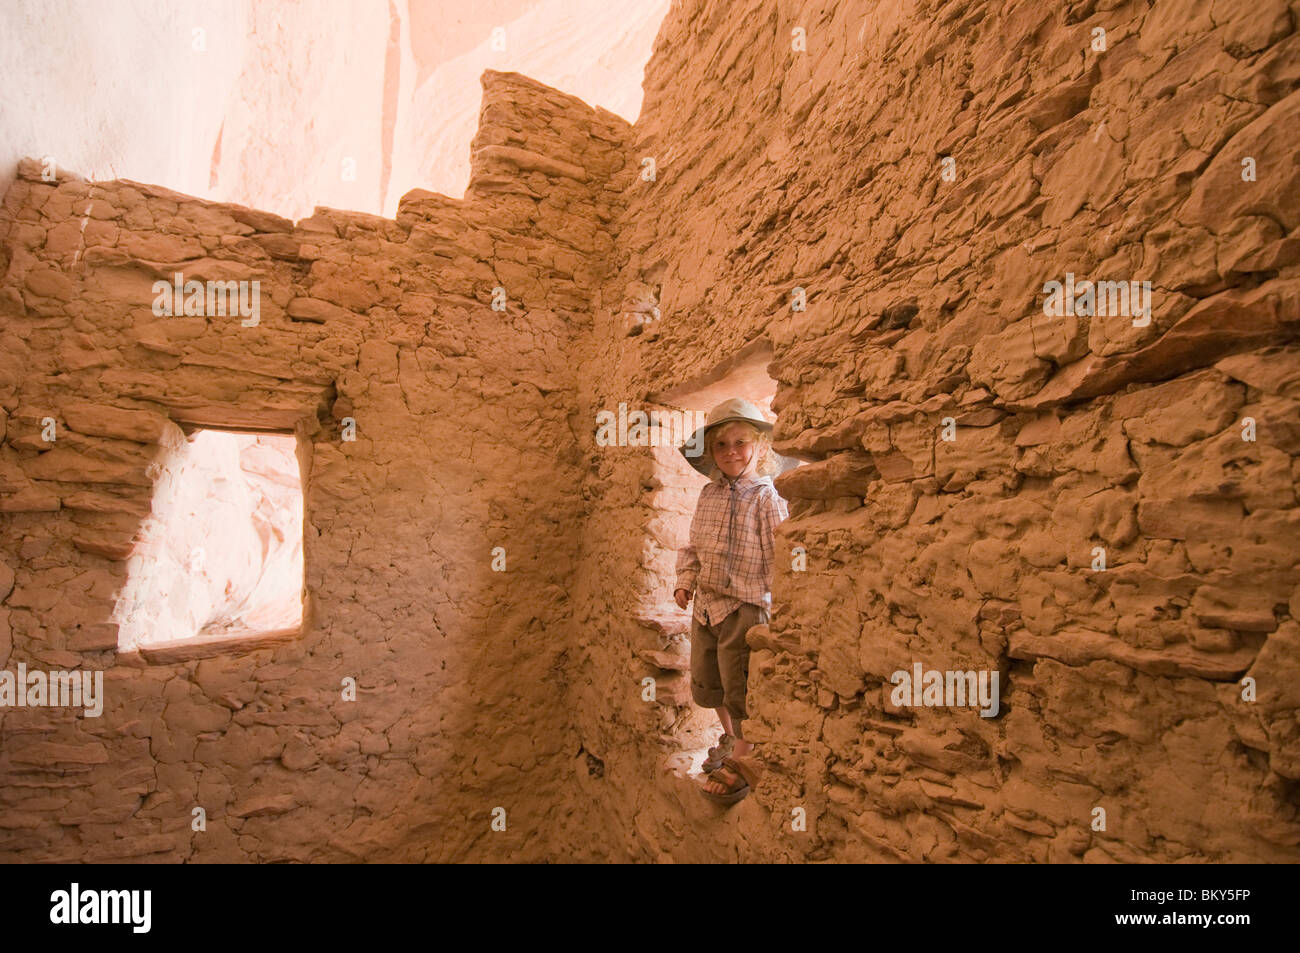 A young boy explores an Anasazi Ruin on the San Juan River, Mexican Hat, Utah. - Stock Image